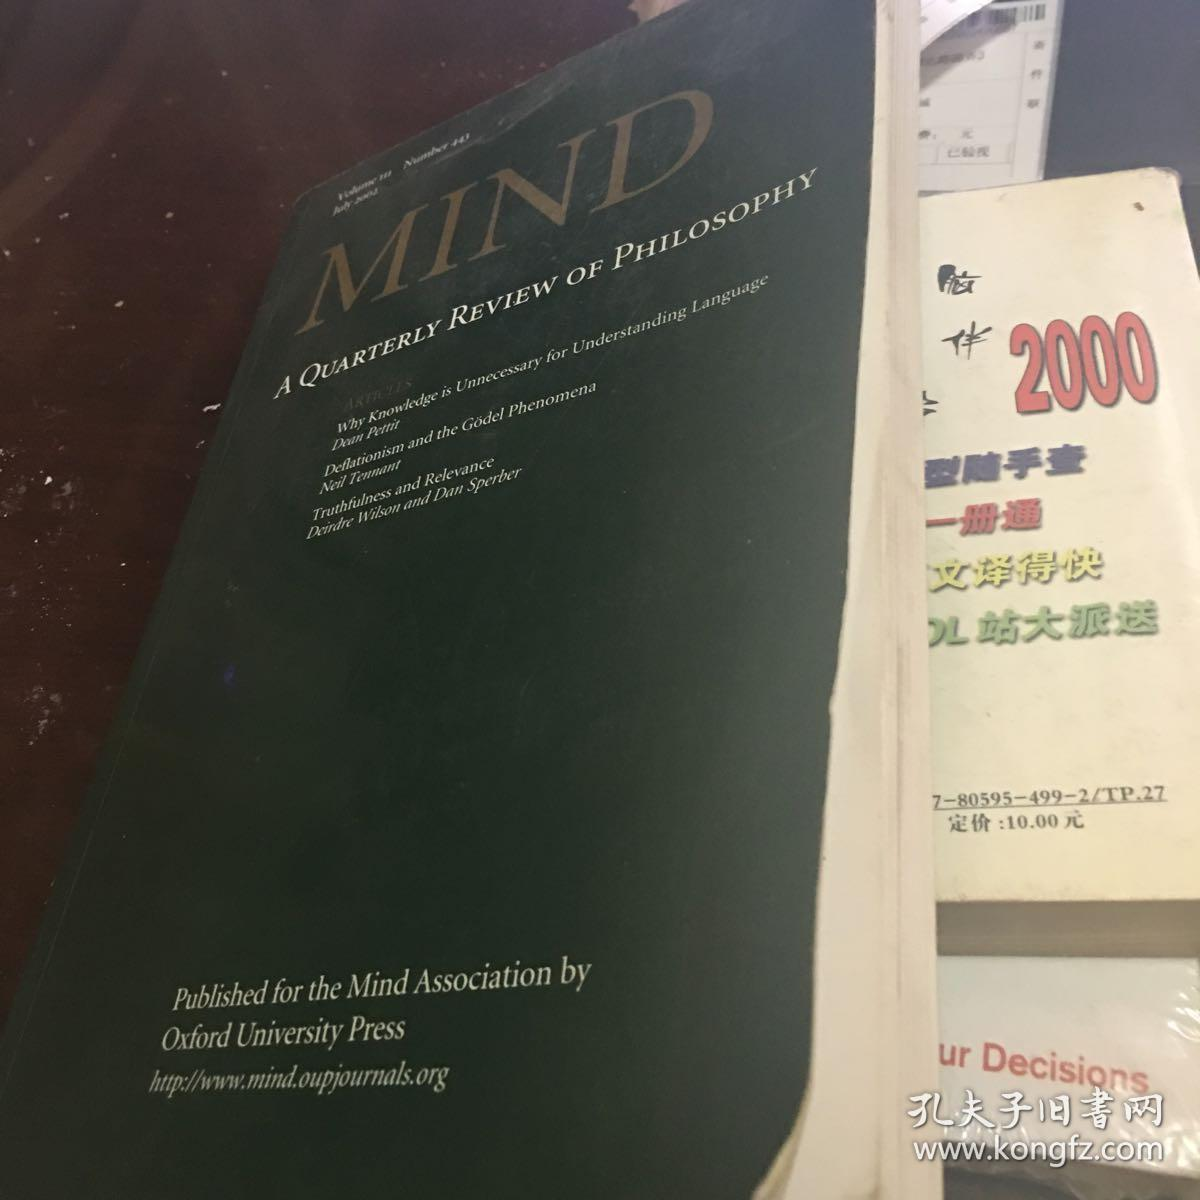 vol 111 number 443 july 2002 mind a quatrterly review of philosophy:why knowledge is unneccessry for understanding language dean prttit;deflationism and the godel phenomena:neil tennant ect